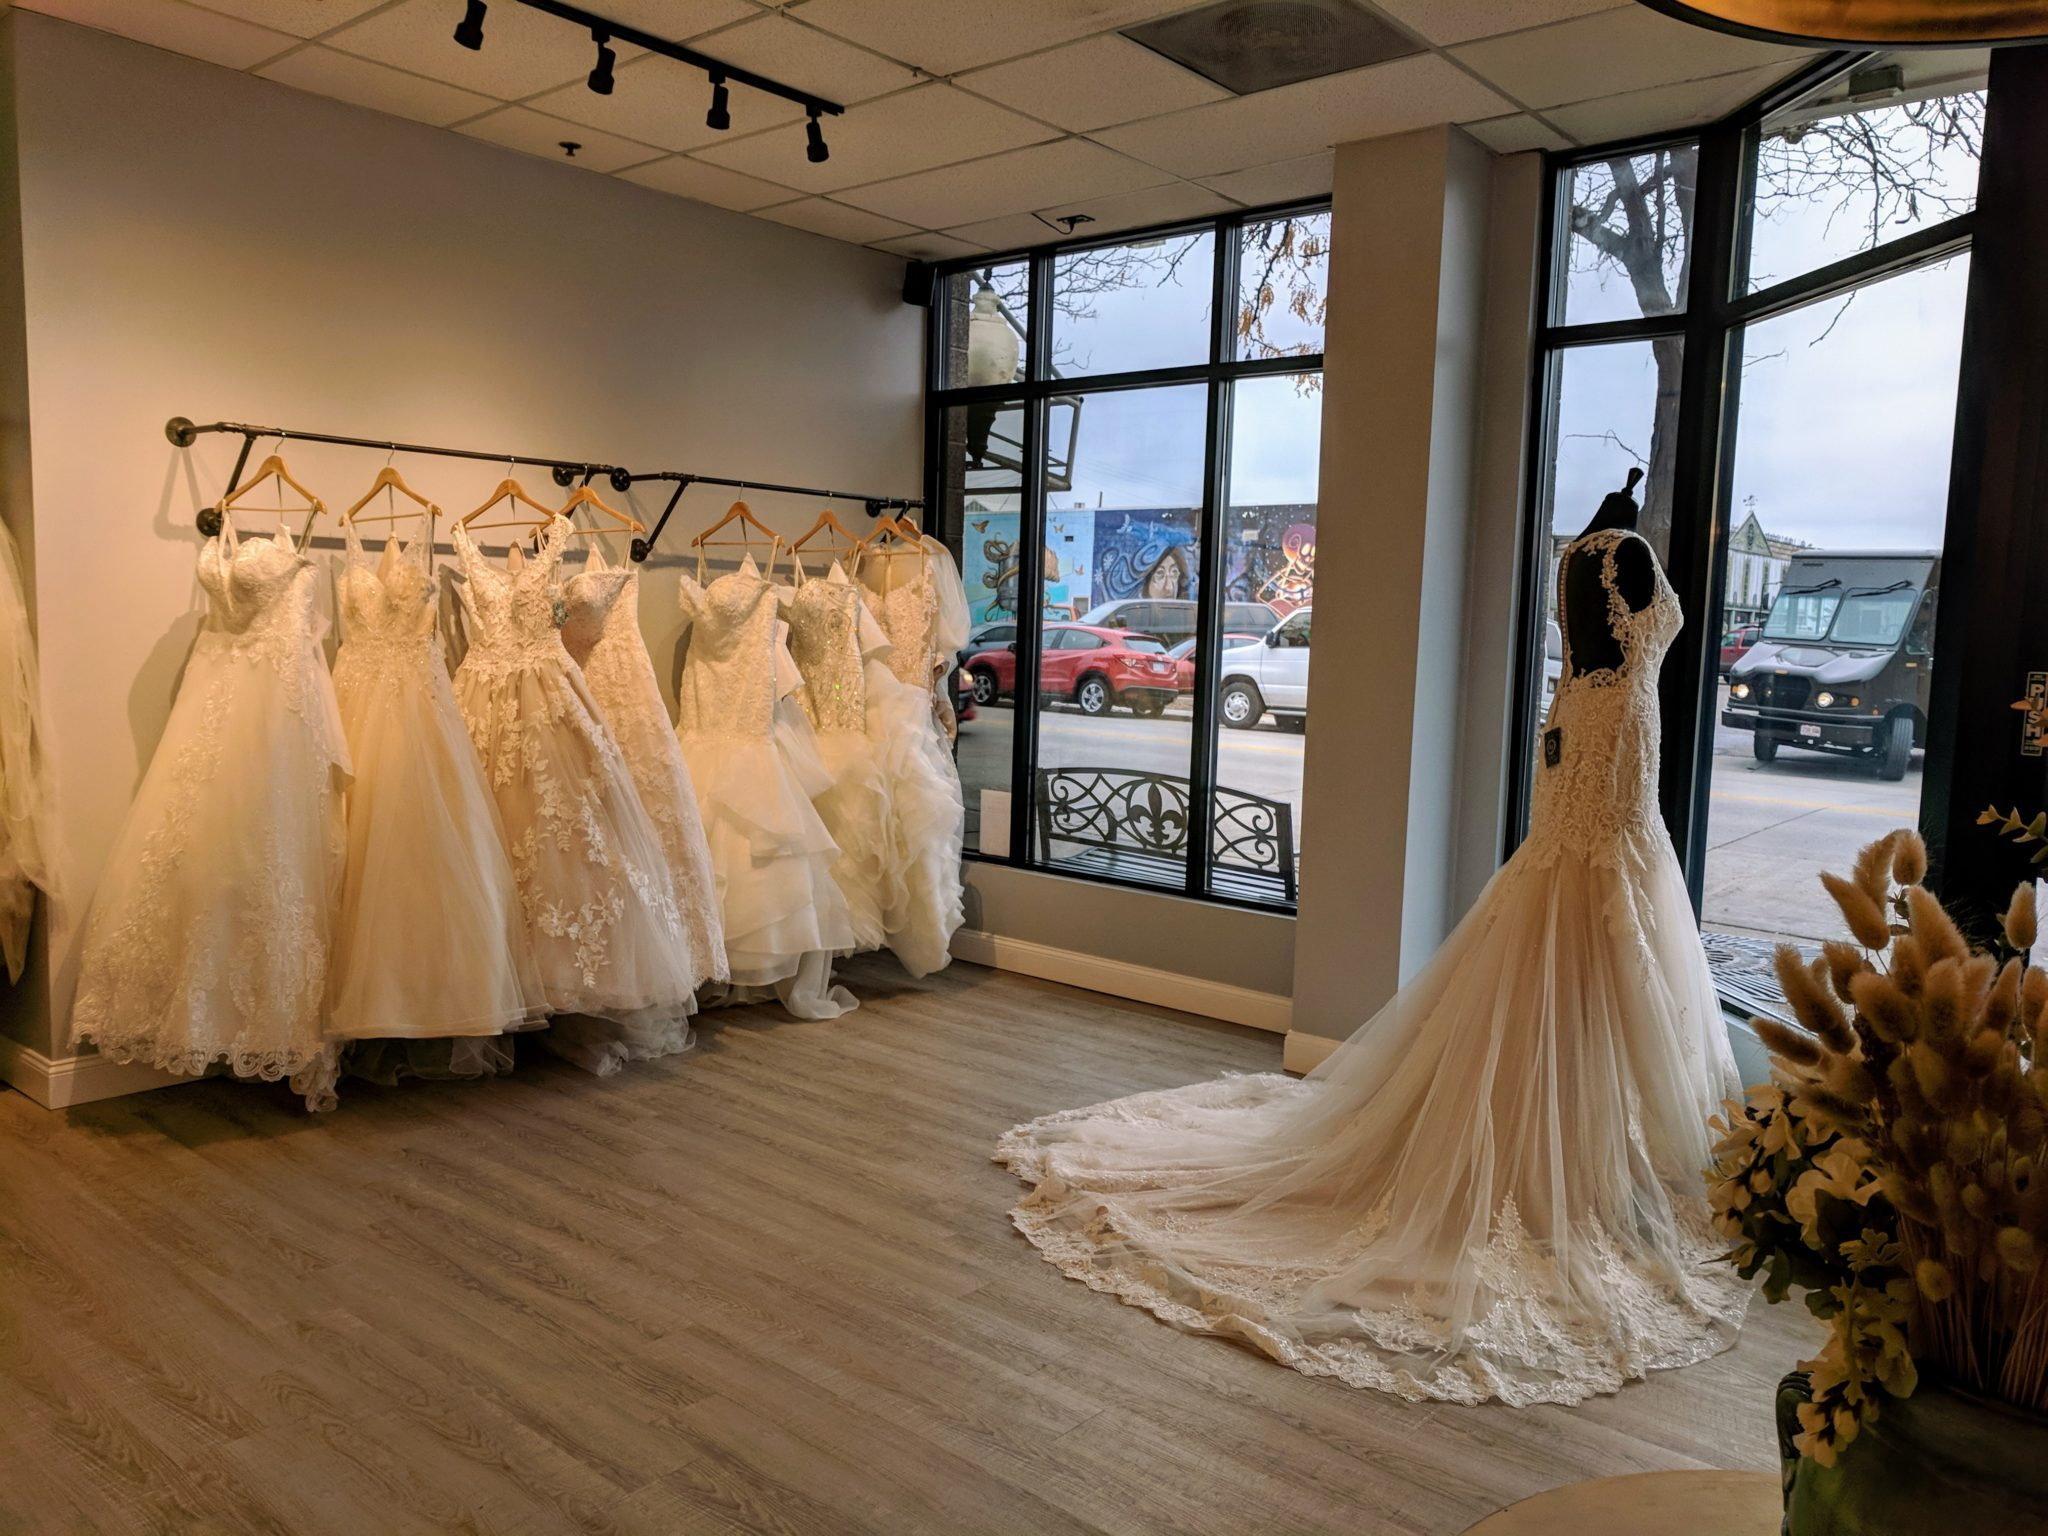 dfc1ea759ad About the owner  Moonlight Gowns at Casa Bianca bridal